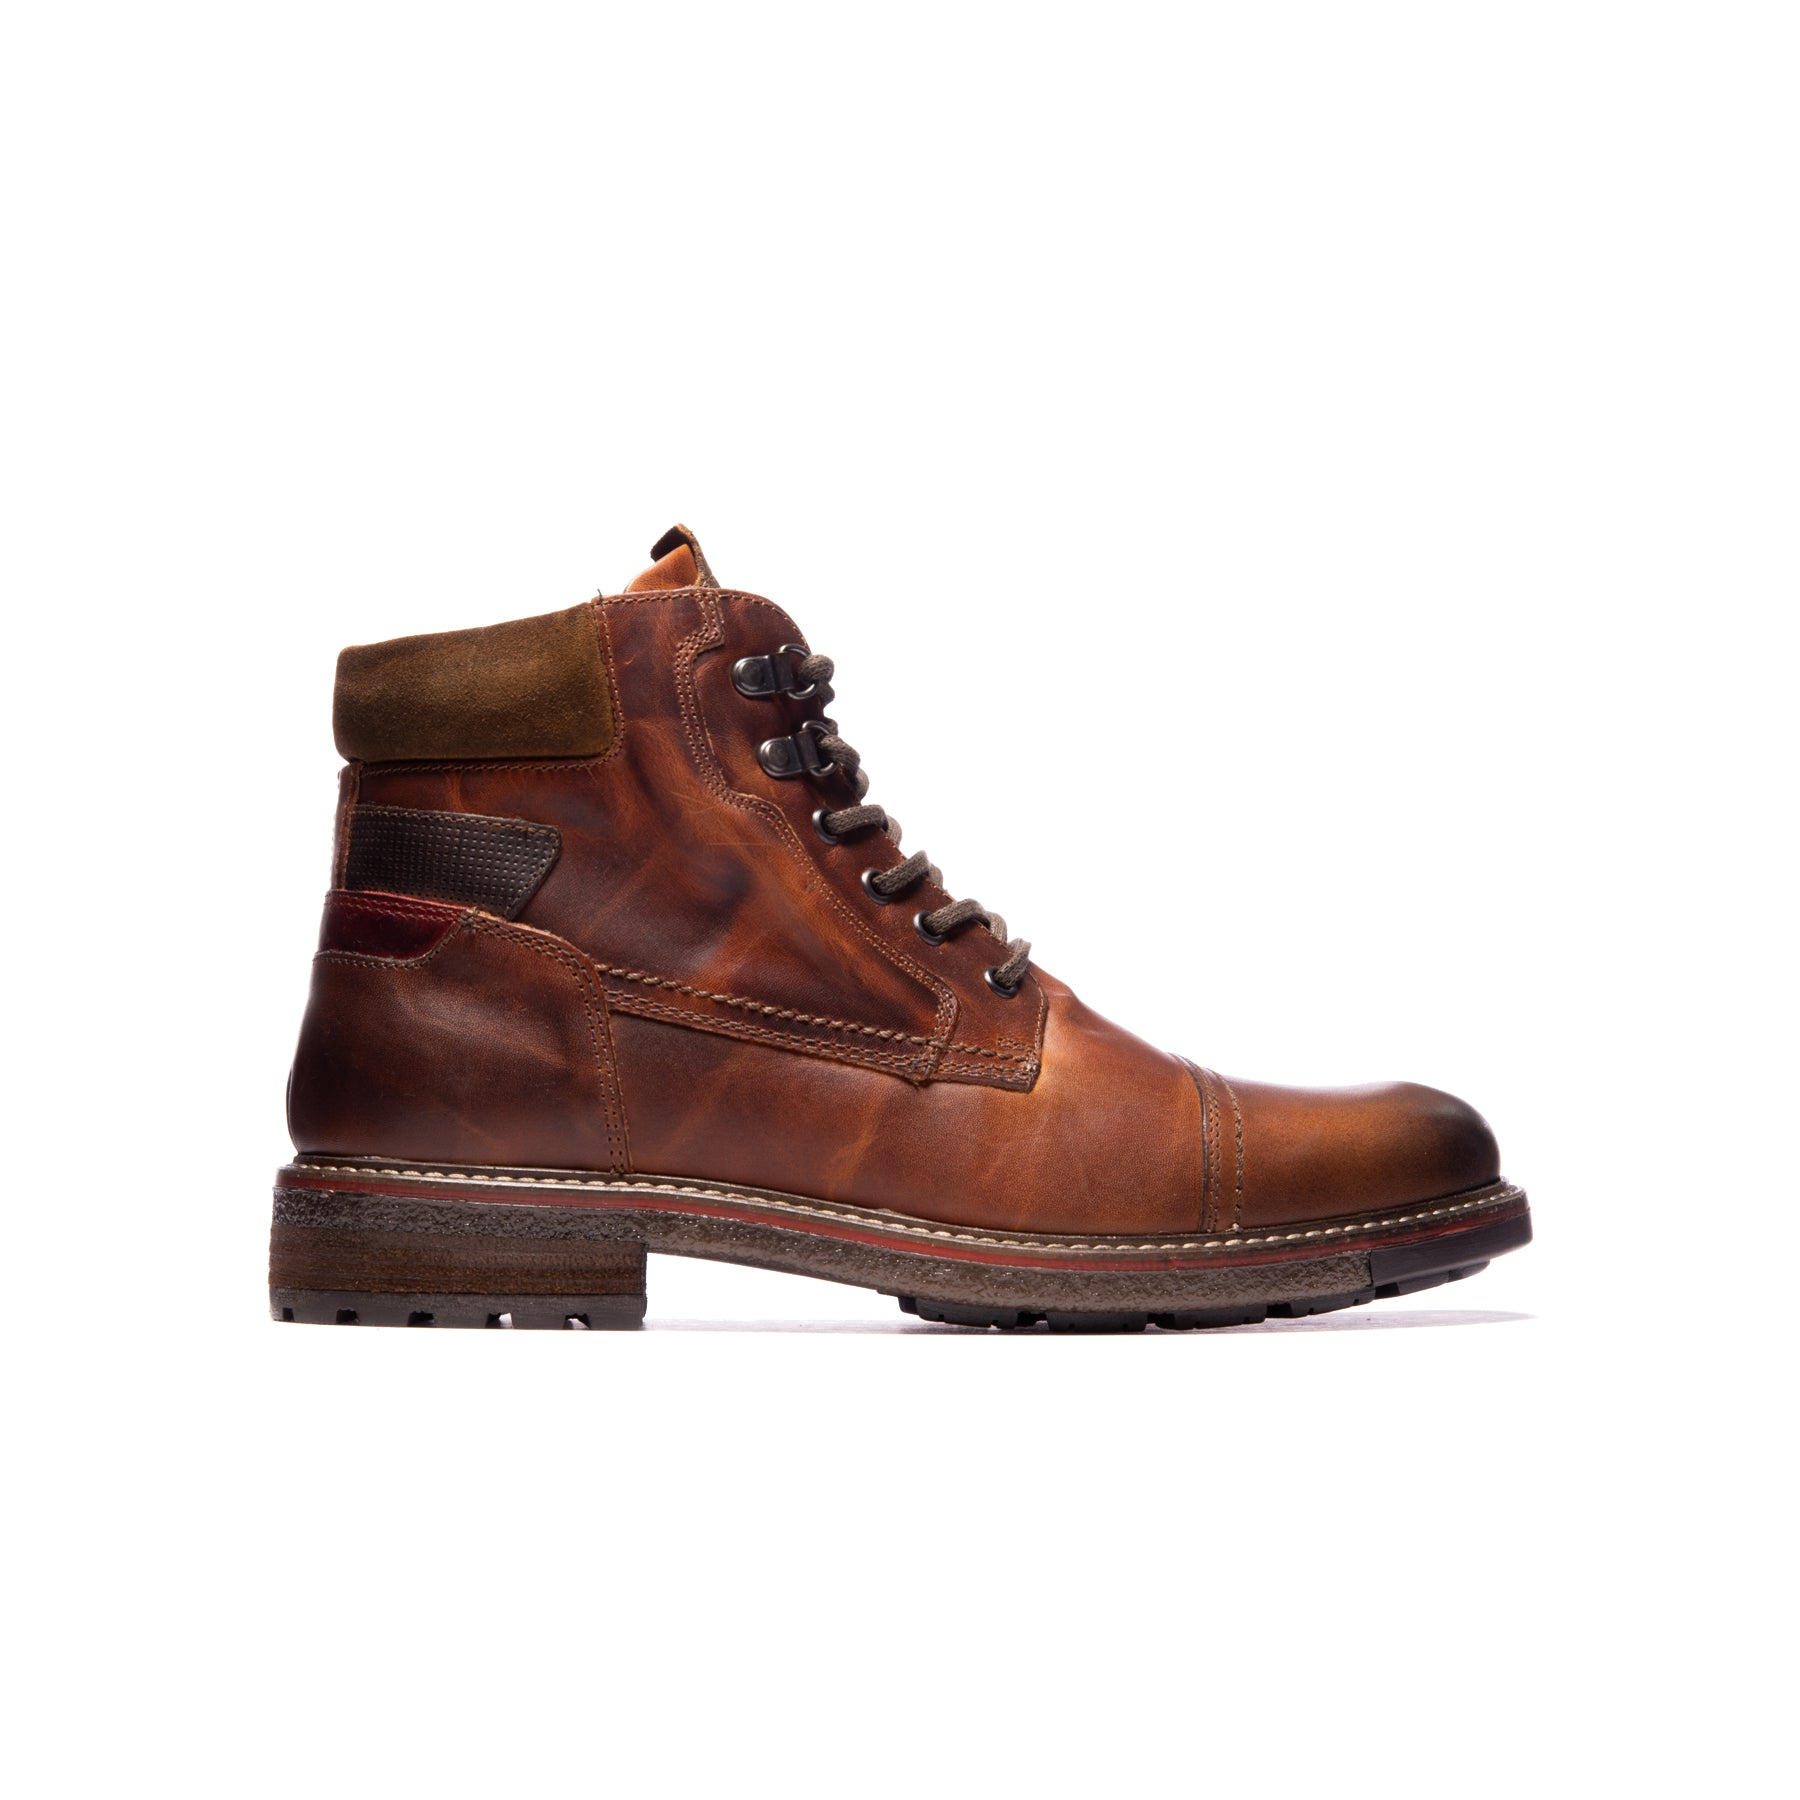 Colorado Cognac Leather